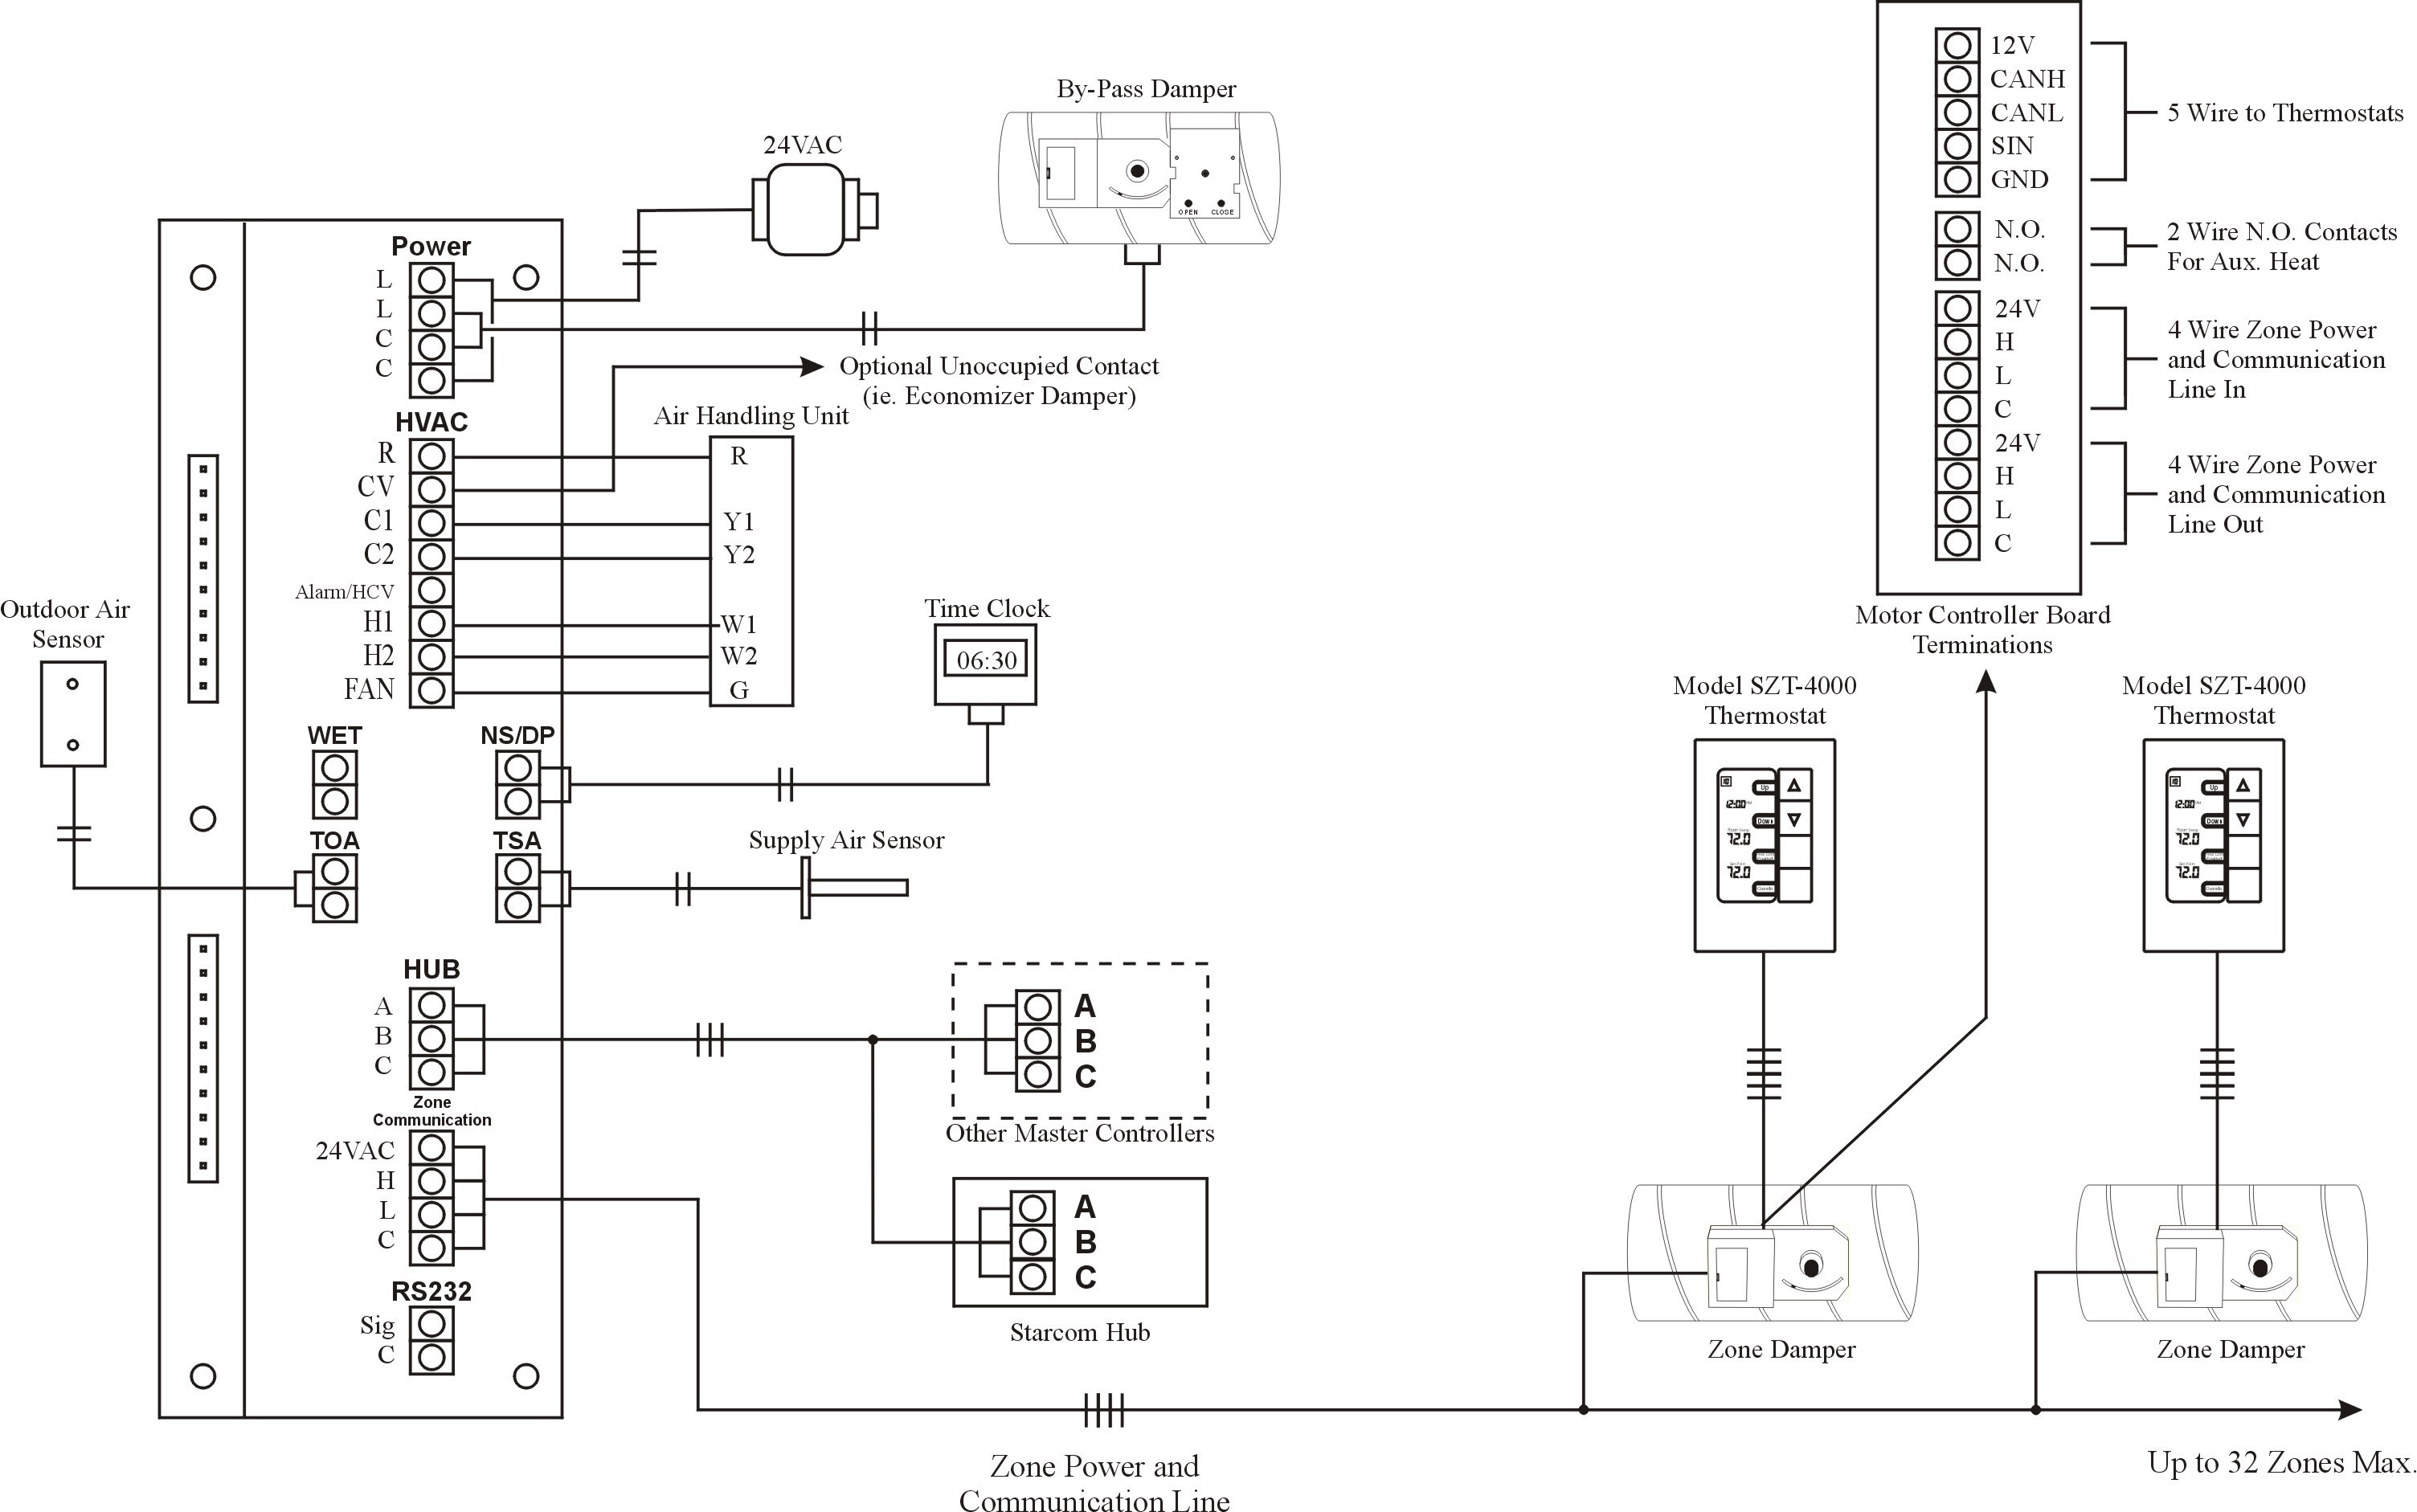 Dsc 4020 Wiring Diagram - List of Wiring Diagrams Eagle Alarm Wiring Diagram on